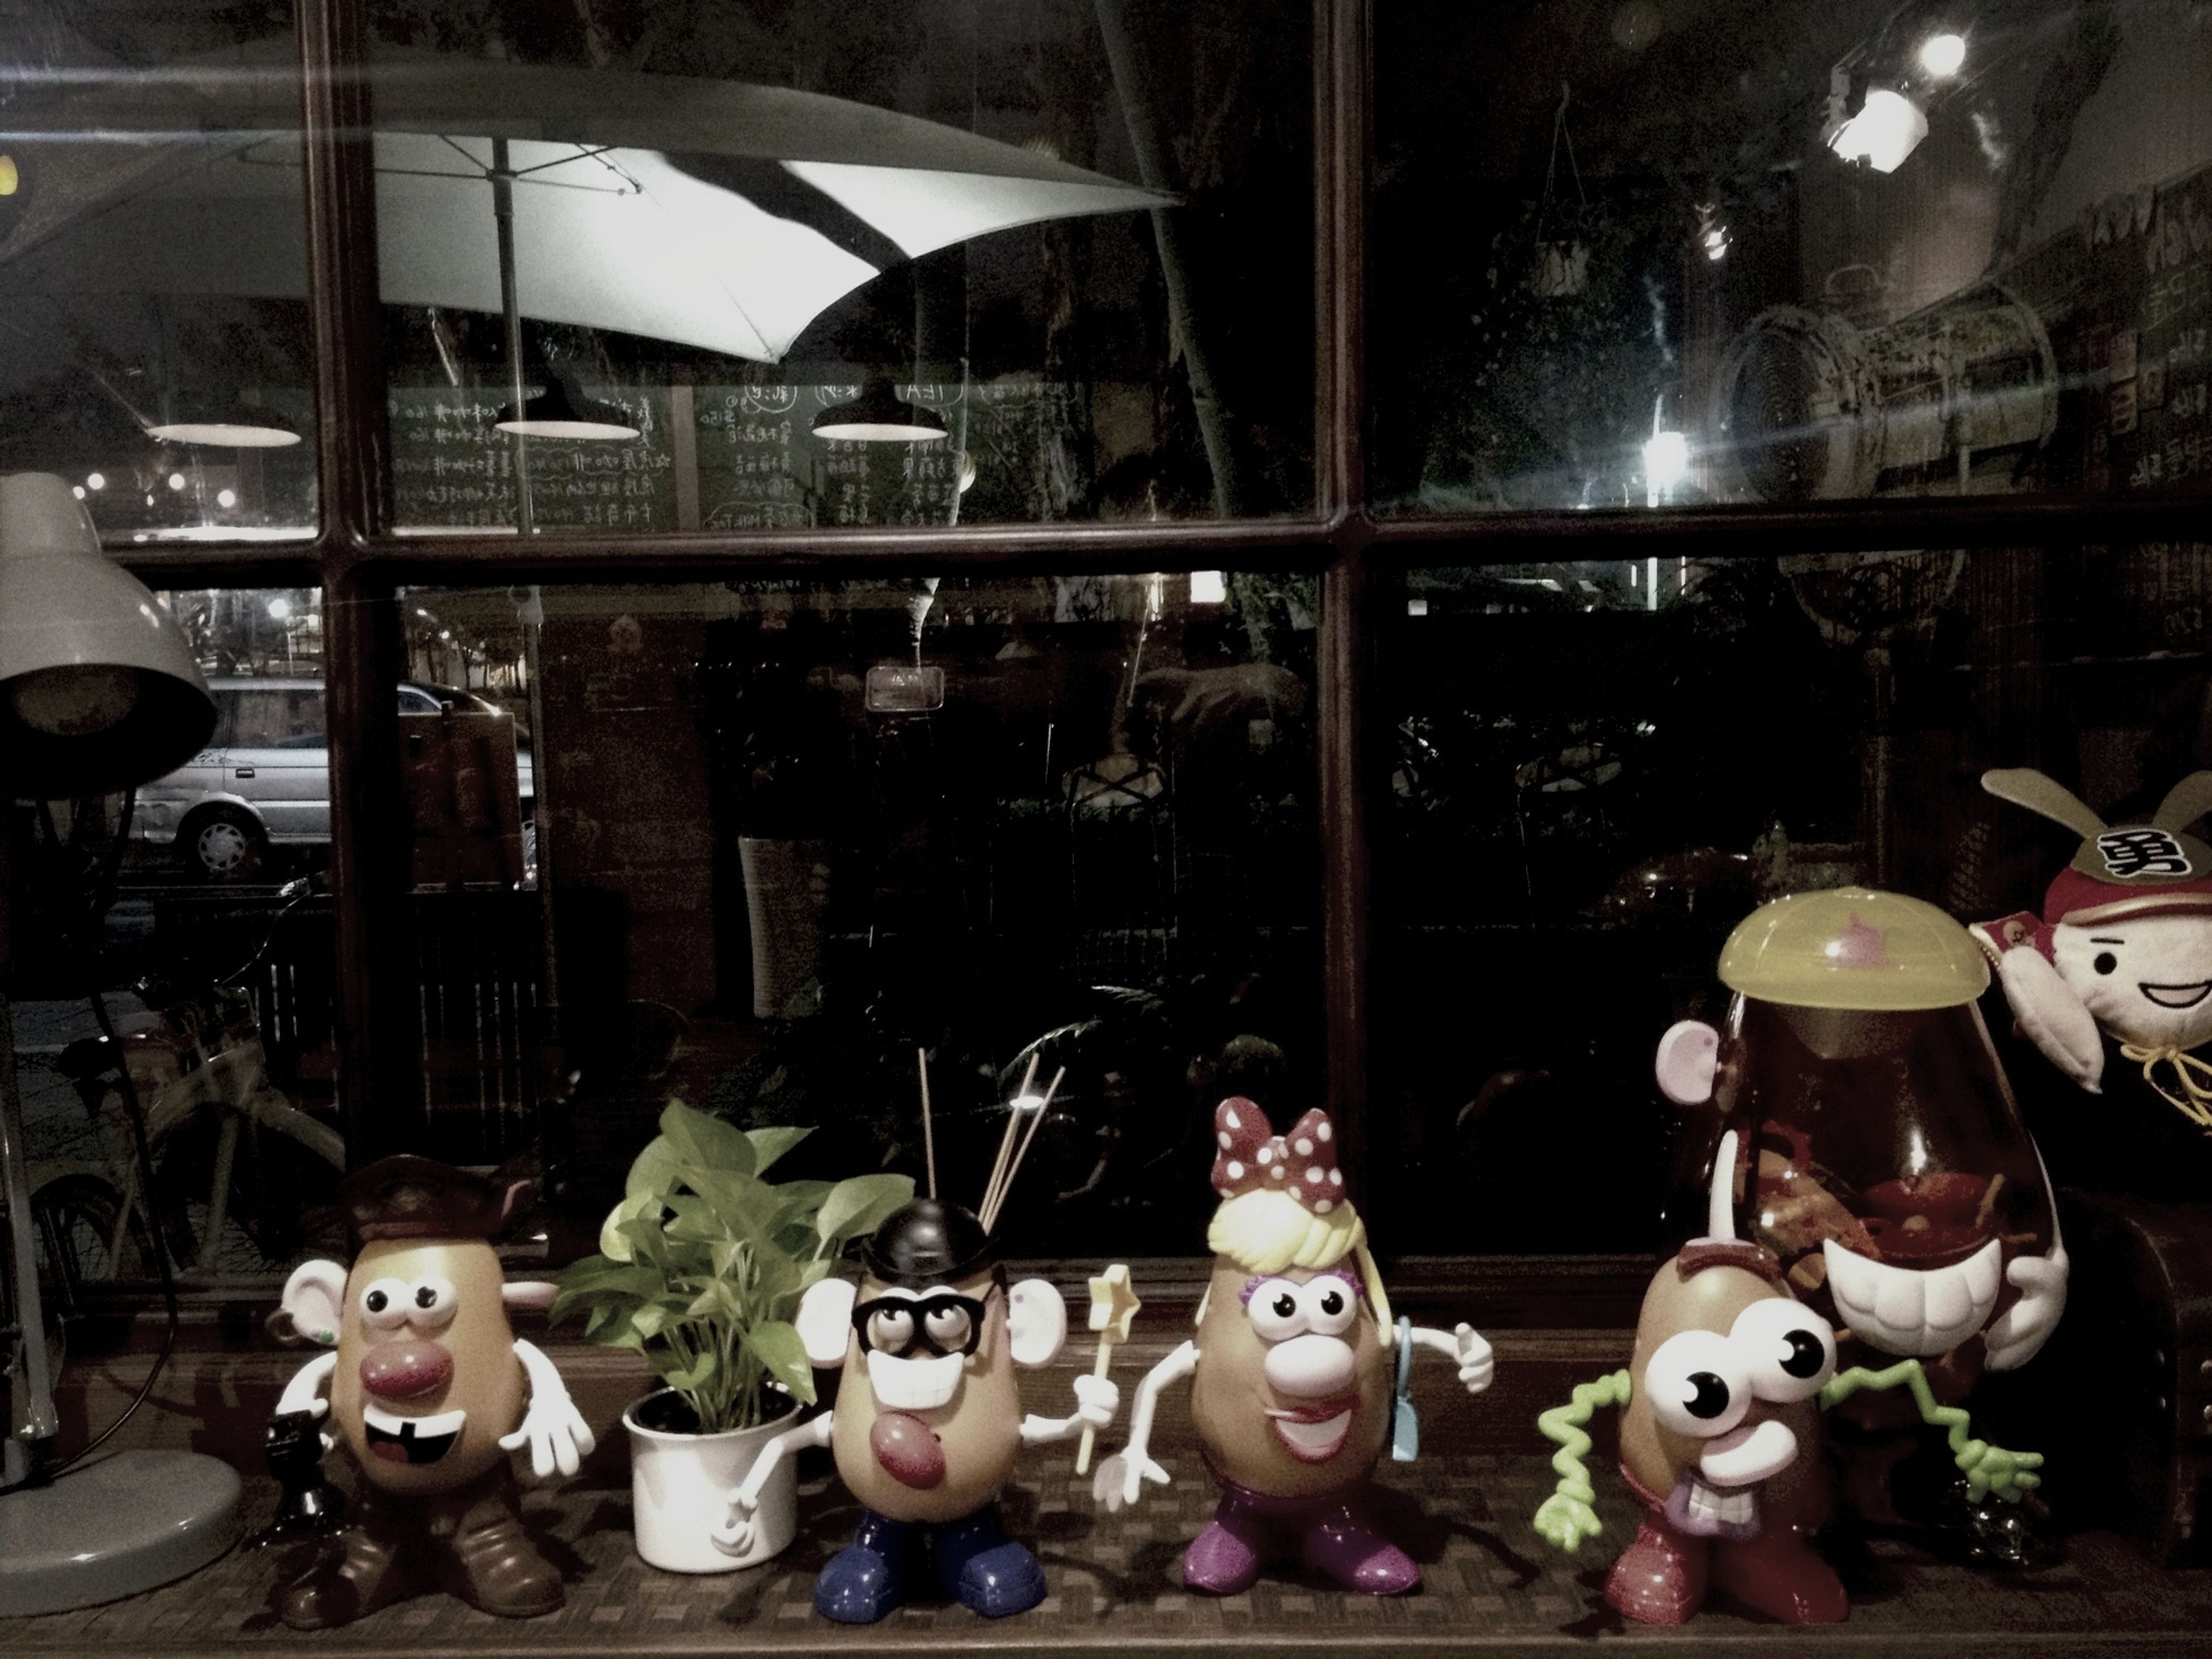 indoors, retail, large group of objects, store, human representation, glass - material, illuminated, for sale, choice, variation, shop, abundance, arrangement, still life, sitting, night, market, incidental people, retail display